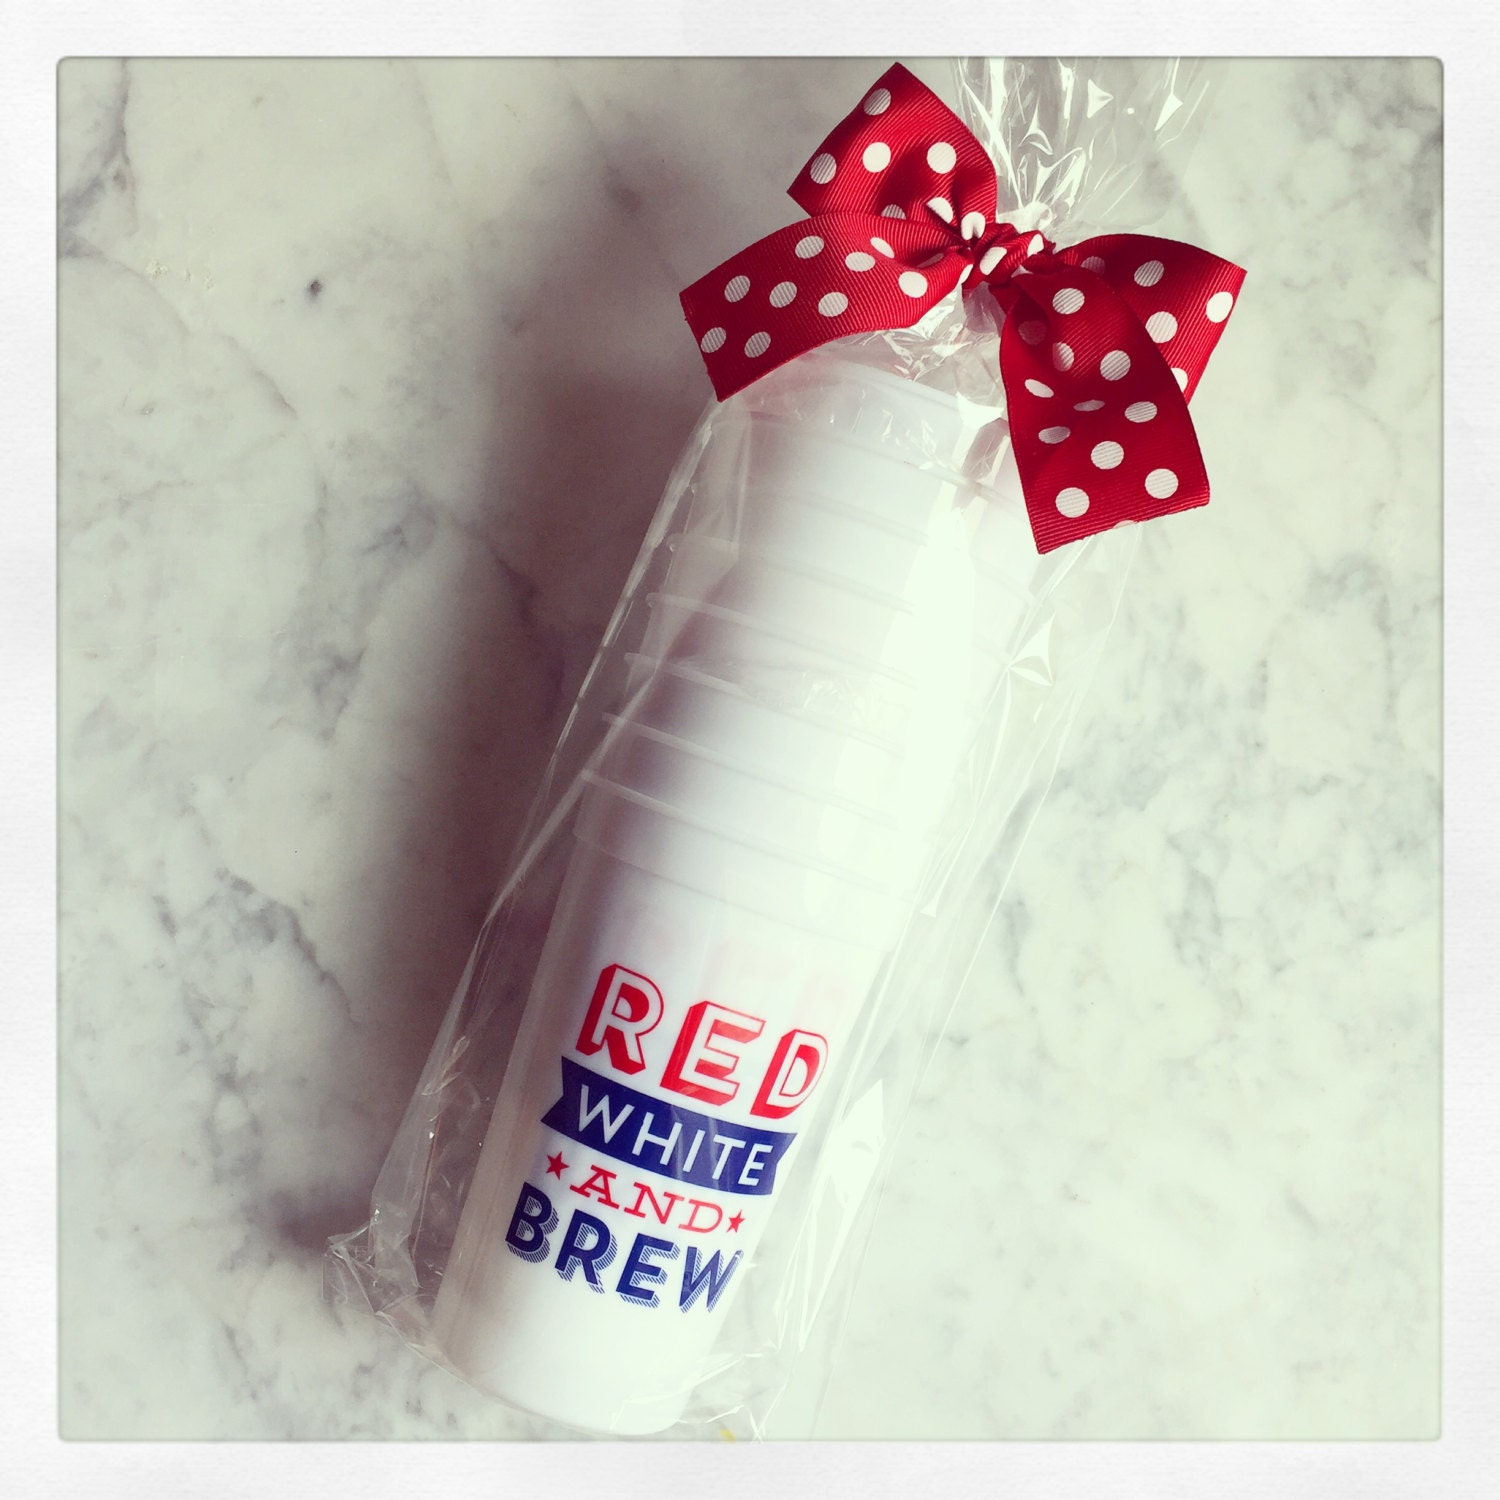 Red White and Brew 20oz Stadium Cups - photo#38